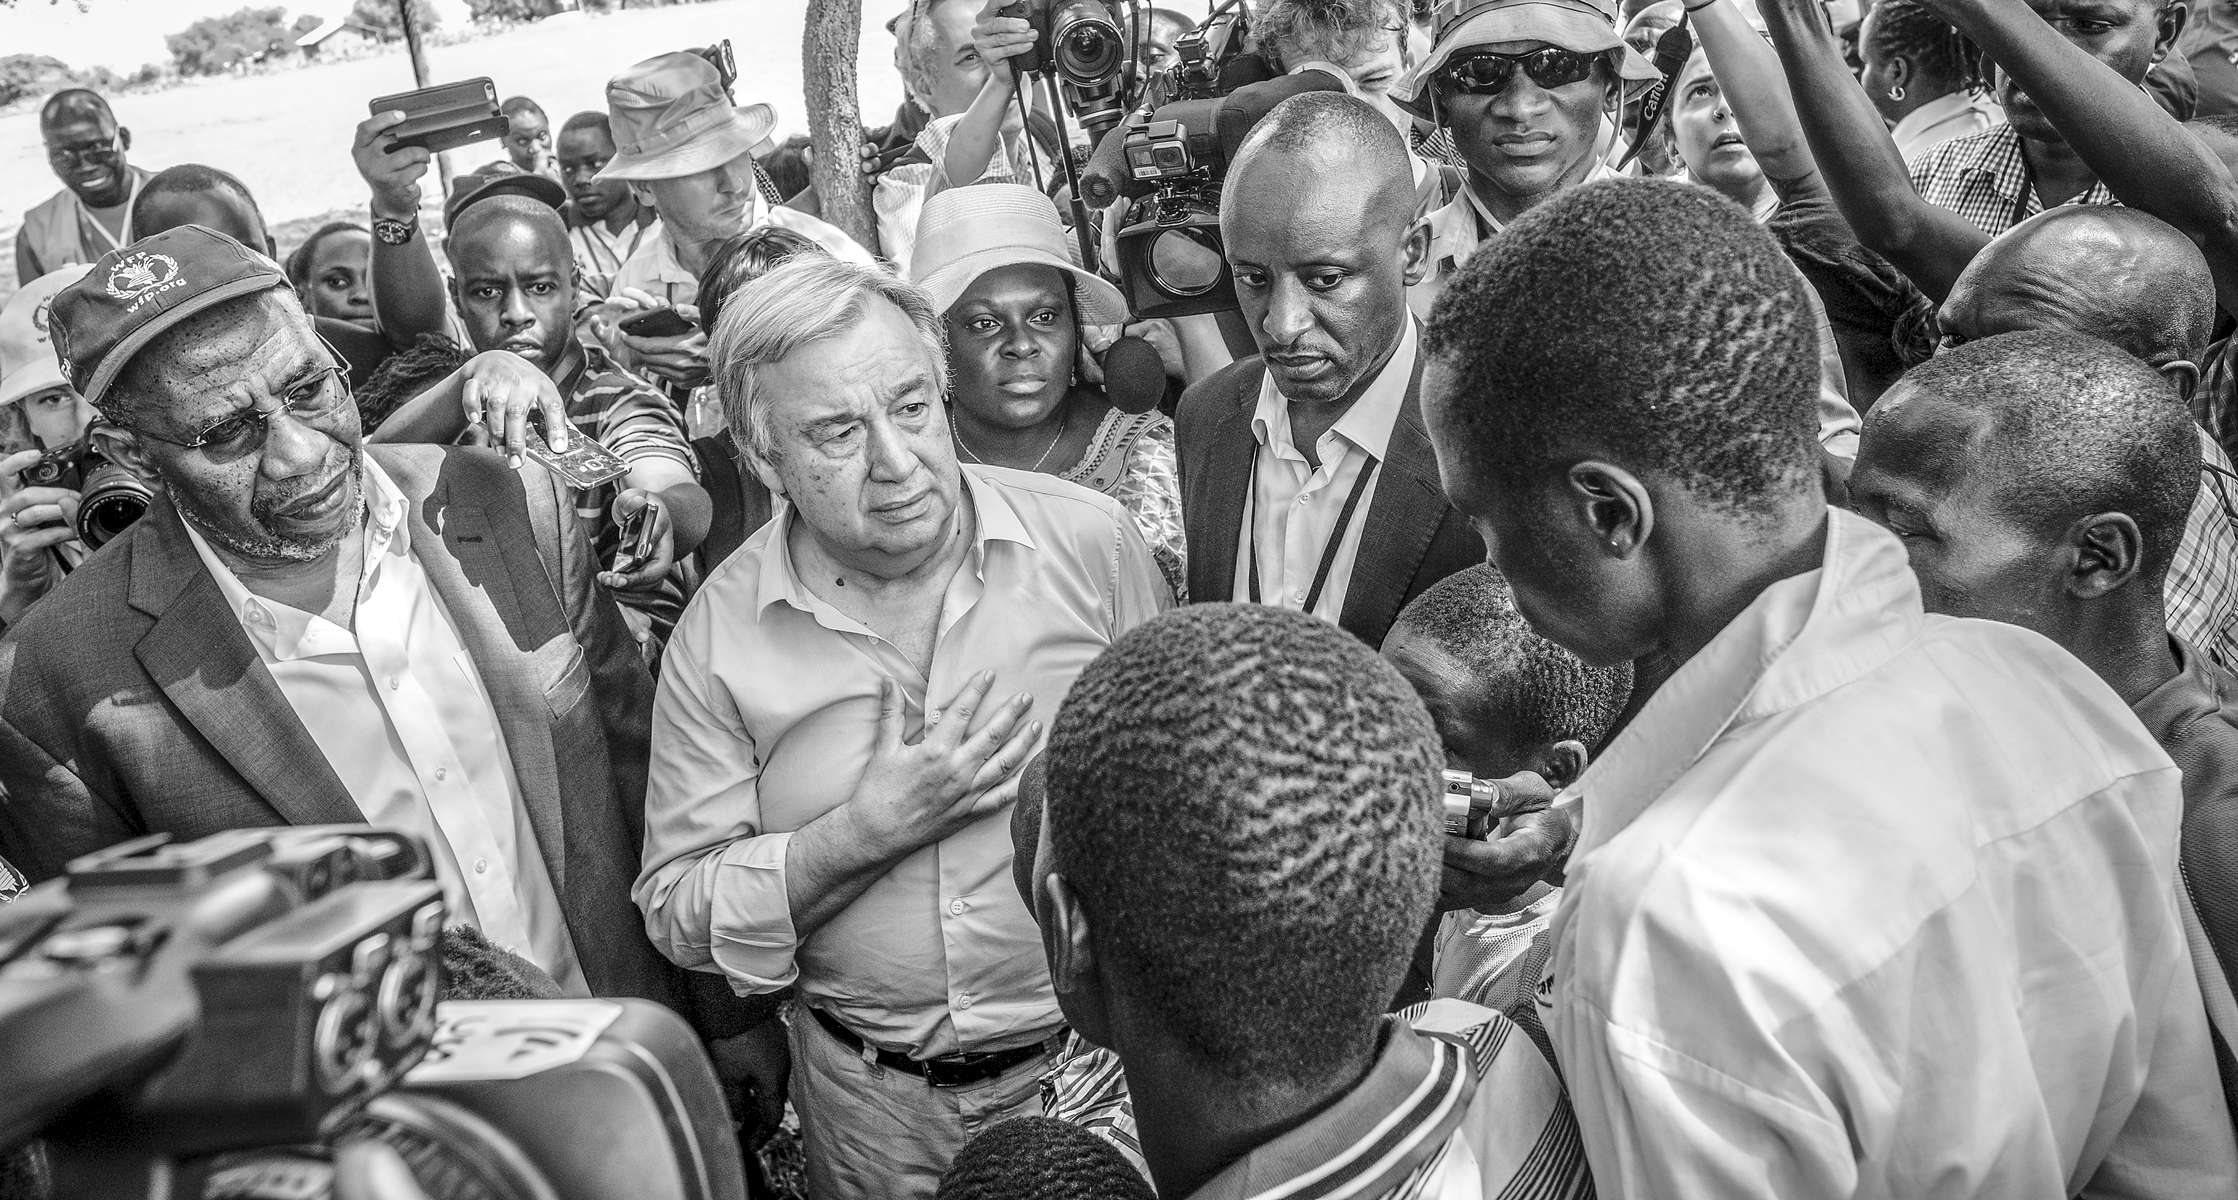 UN Secretary General Antonio Gutierres listens to South Sudanese refugees at Imvepi refugee settlement in northern Uganda 22 June 2017. According to the UN refugee agency more than 947,000 South Sudanese refugees are sheltering in Uganda, bringing the total number of refugees in the east African nation to more than 1.2 million, hosting the largest numbers of refugees in Africa. .